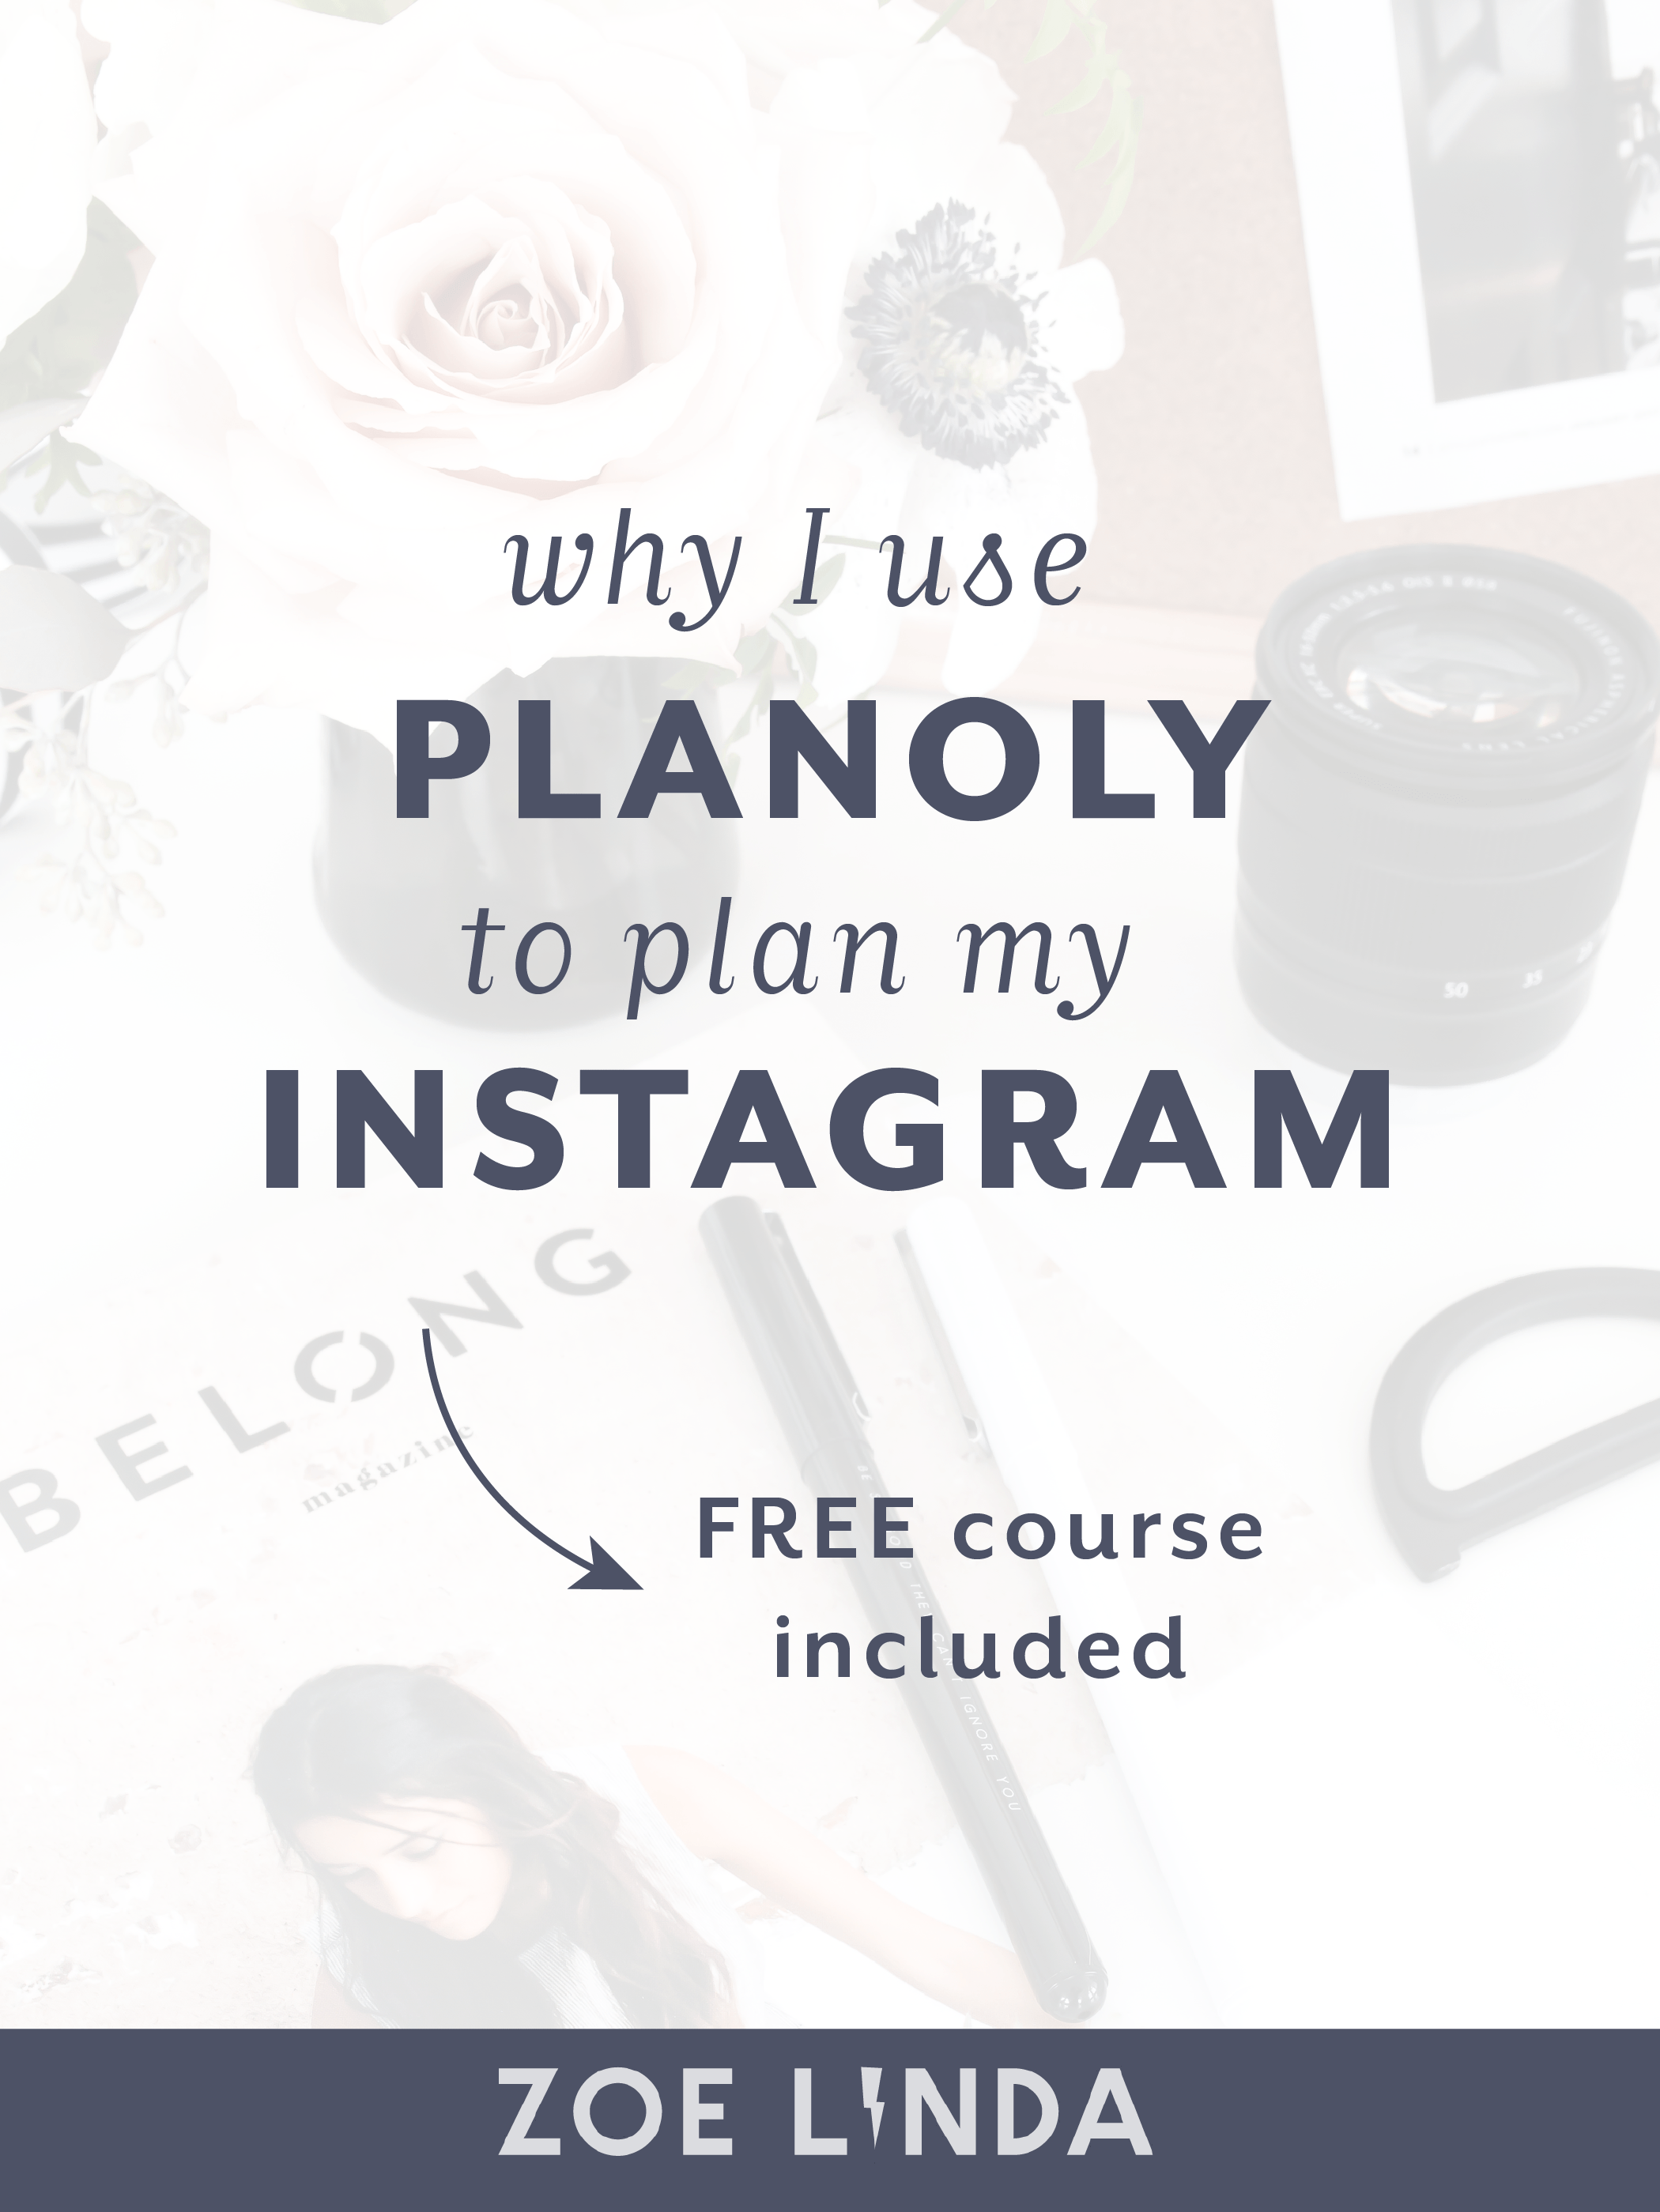 Why I Use Planoly To Plan My Instagram | Instagram scheduling can be a hassle and confusing as heck. But I use a programme that simplifies all of this and makes it crazy easy to regram, track comments and monitor analytics. Click through to learn more about Planoly to grow your Instagram account and define your theme!